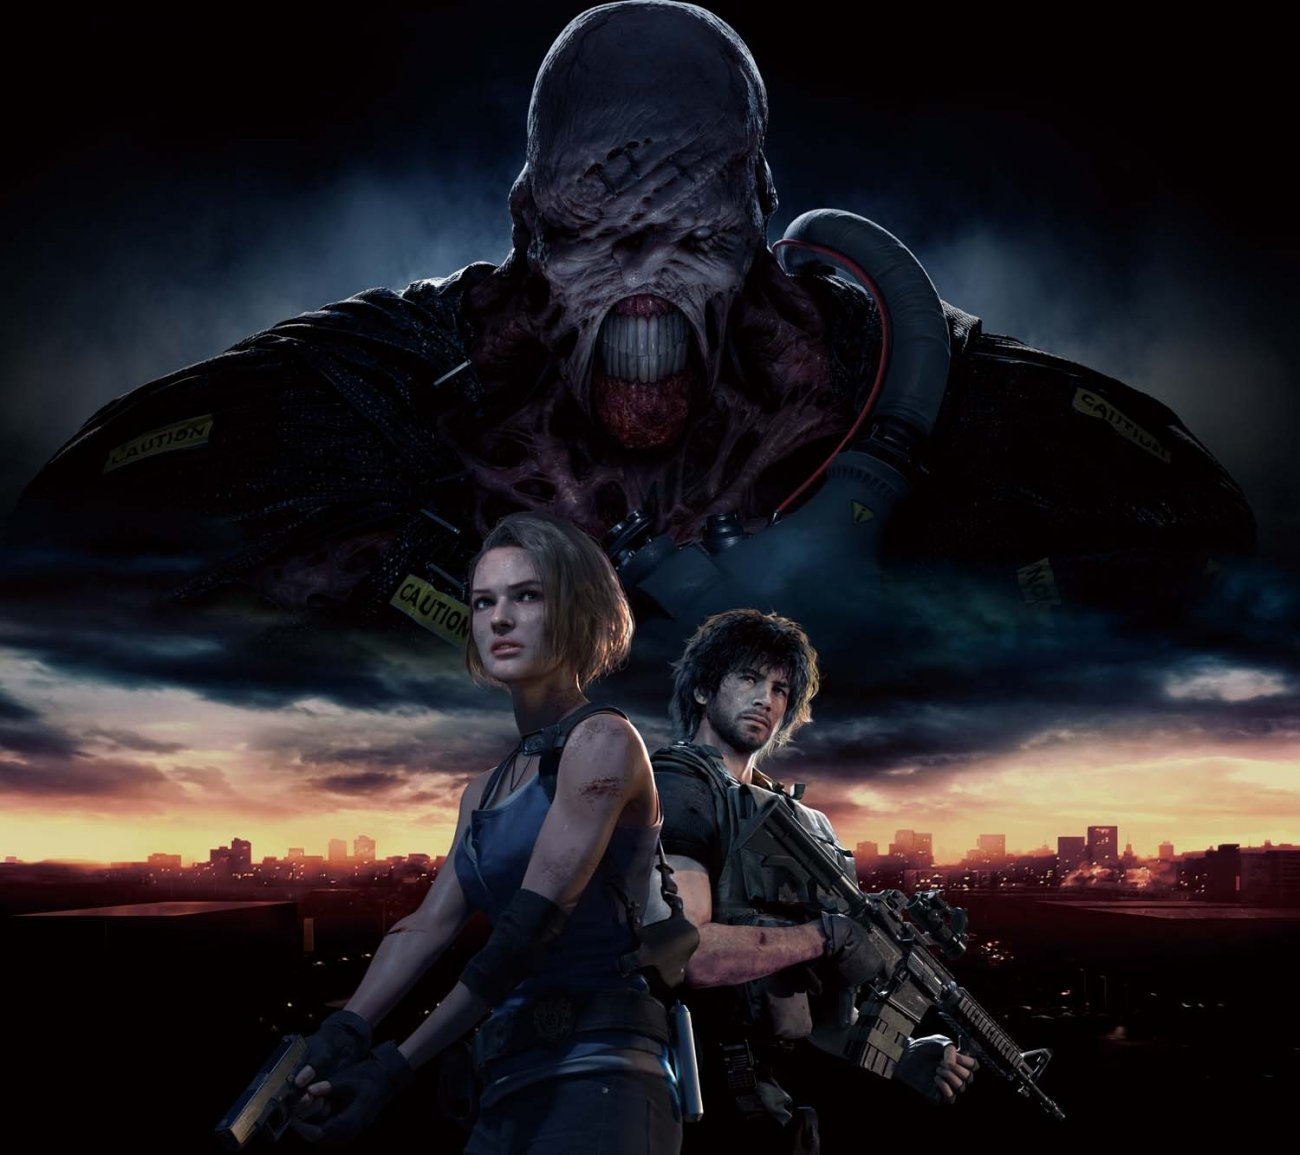 Resident Evil 3 Remake Coming April 2020 To Pc Ps4 And